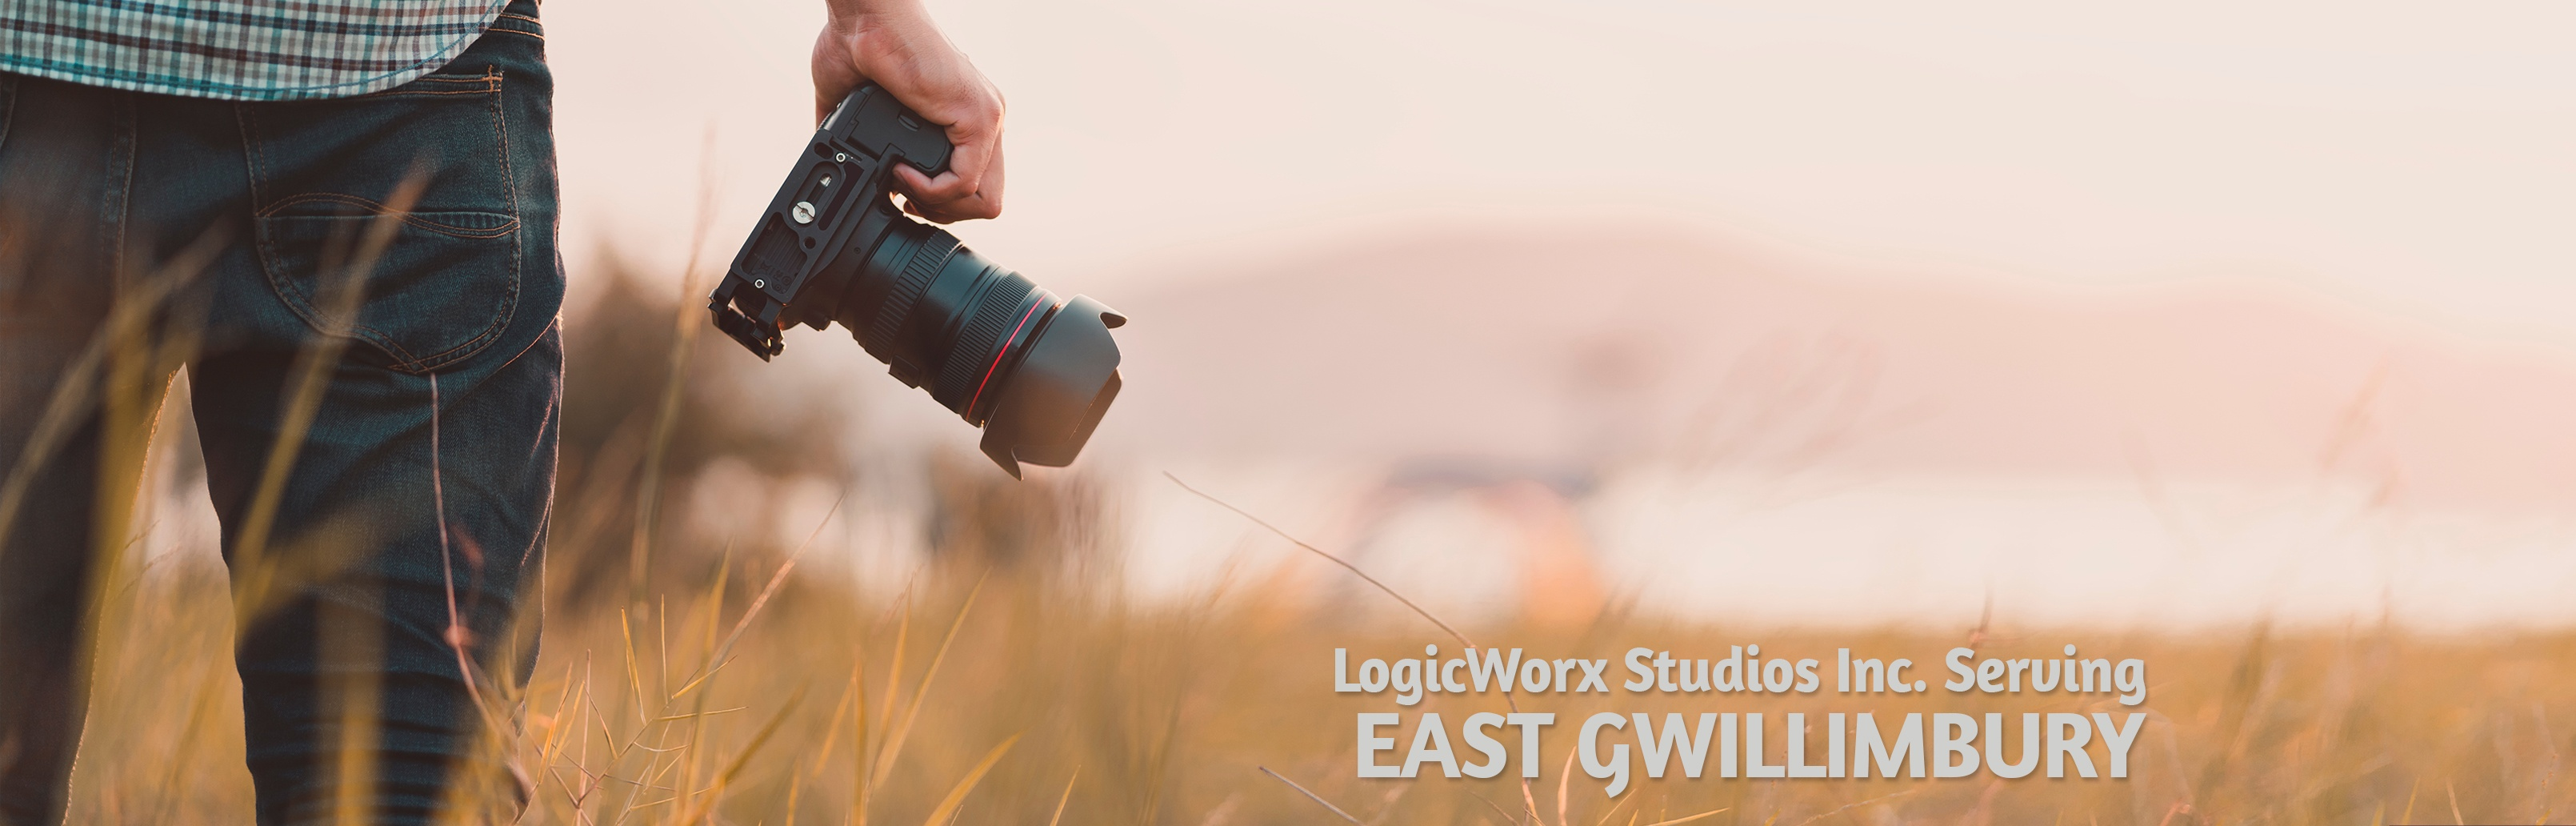 LogicWorx Studios Inc. Serving East Gwillimbury